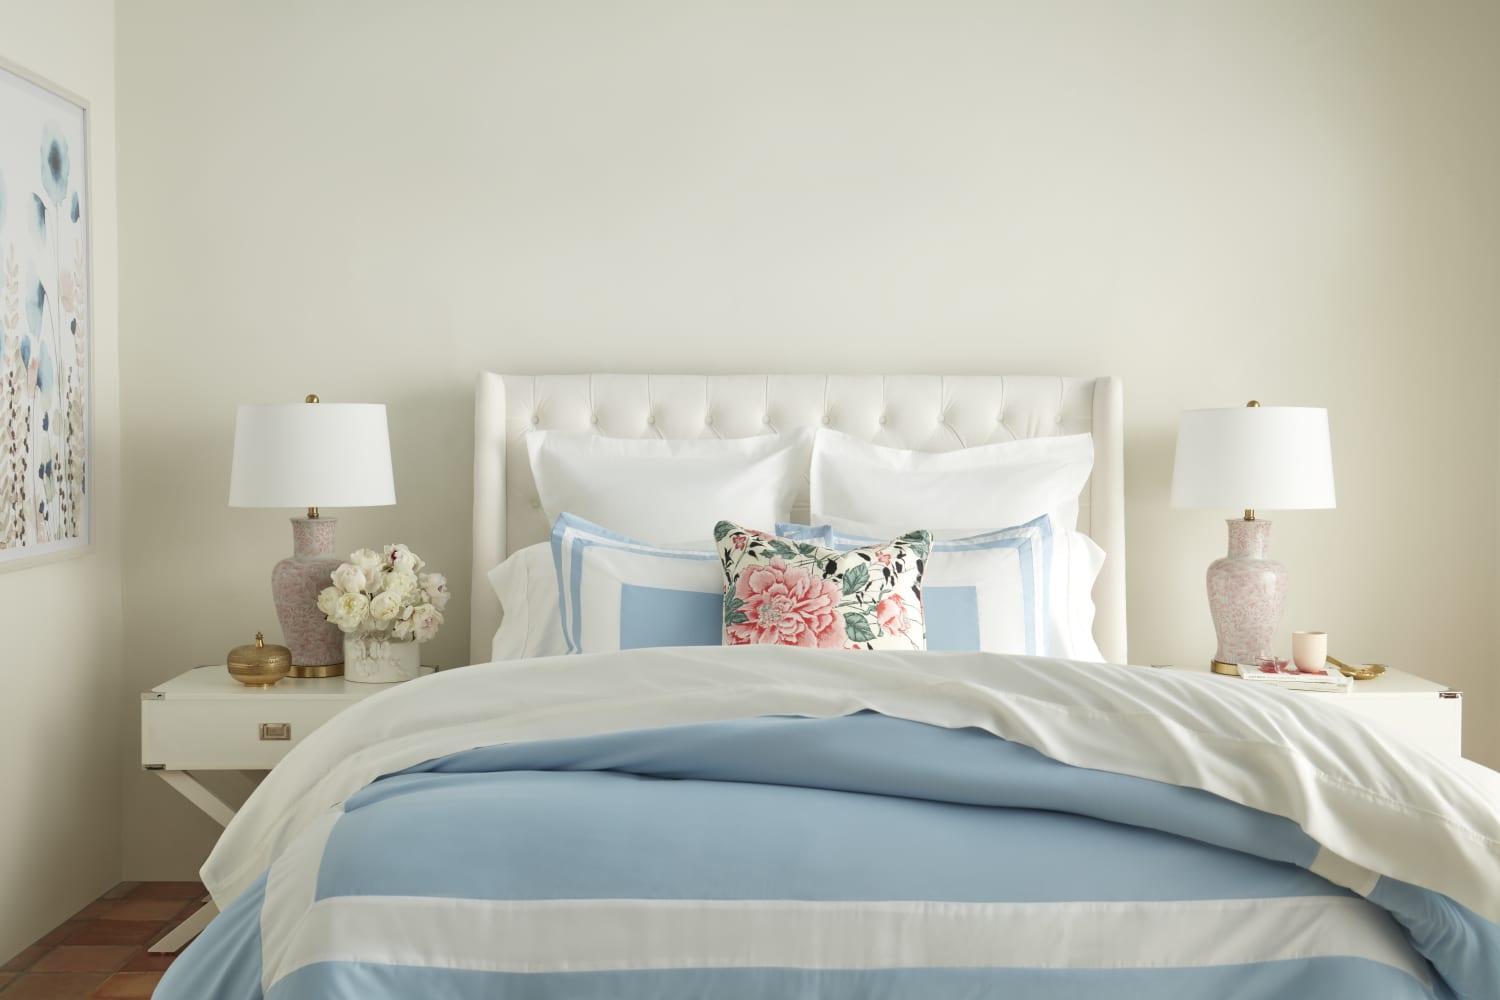 3 Unique Ways to Give Your Bedroom a Cheerful Refresh